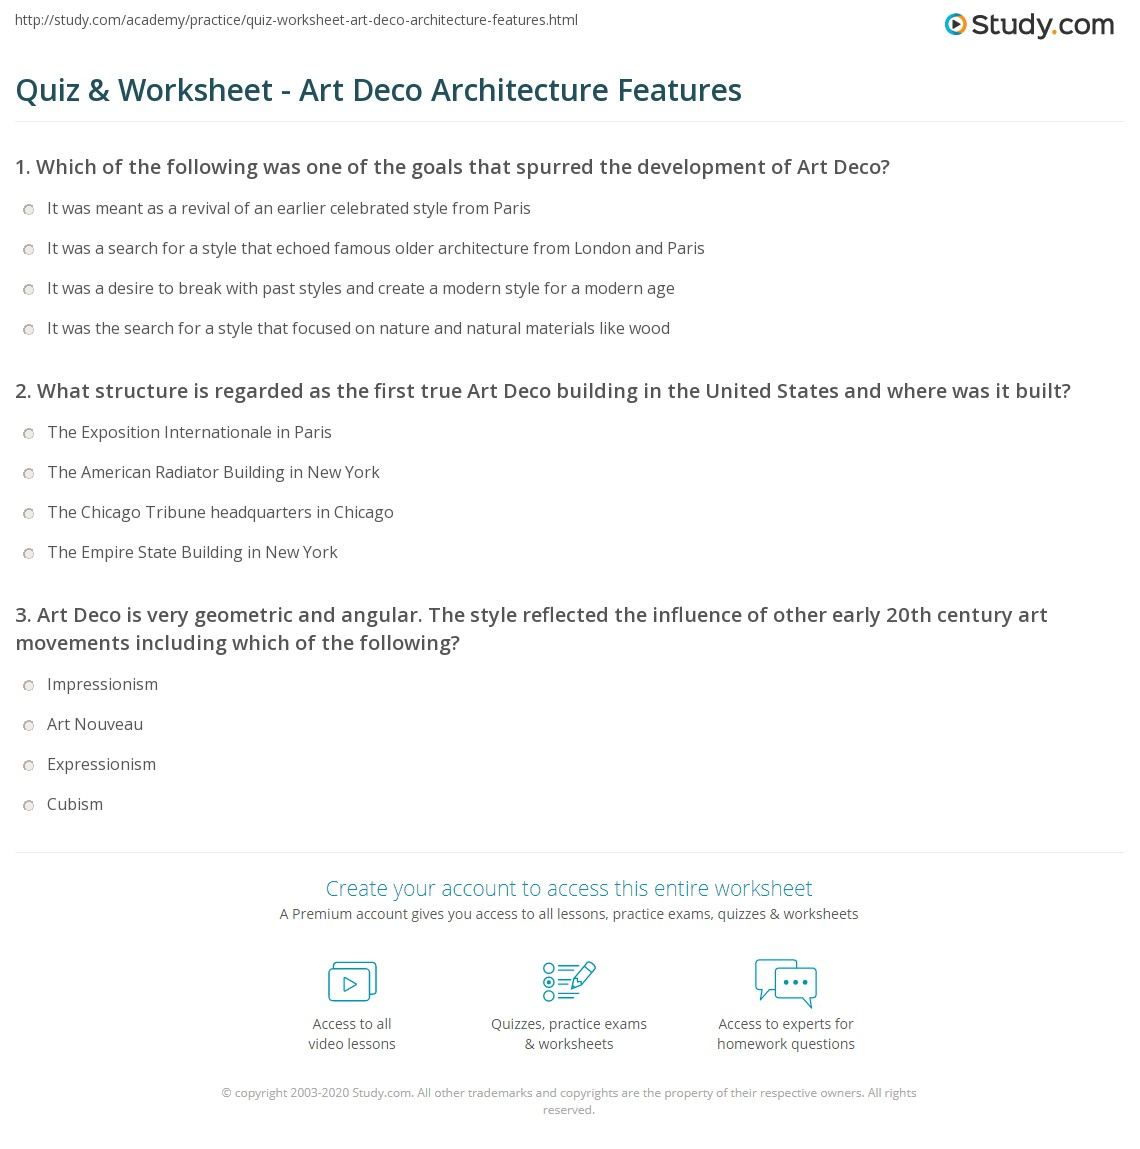 Quiz & Worksheet - Art Deco Architecture Features | Study.com